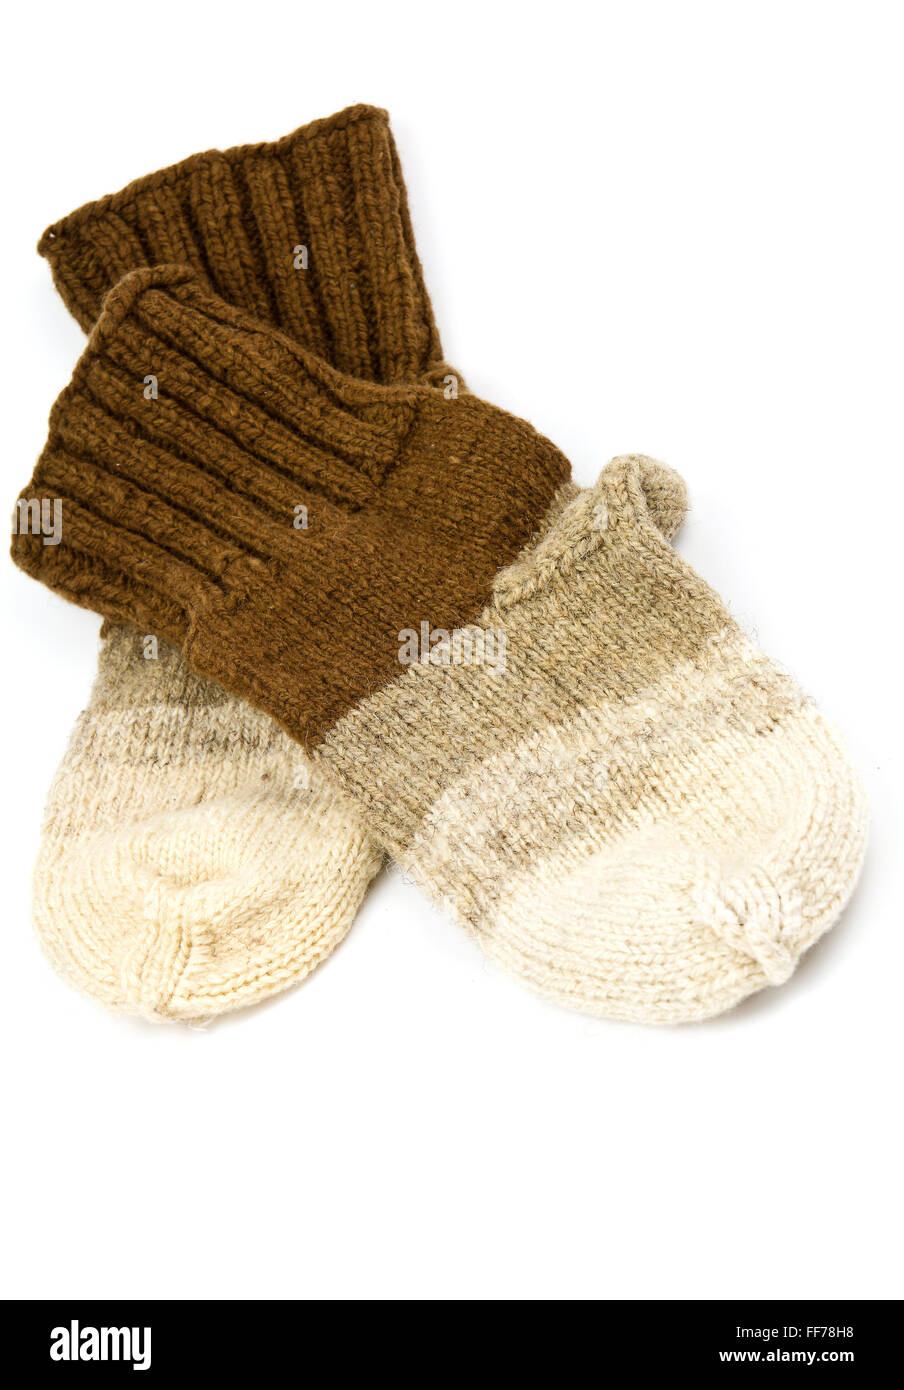 Traditional hand-knit wool socks in three colors - Stock Image